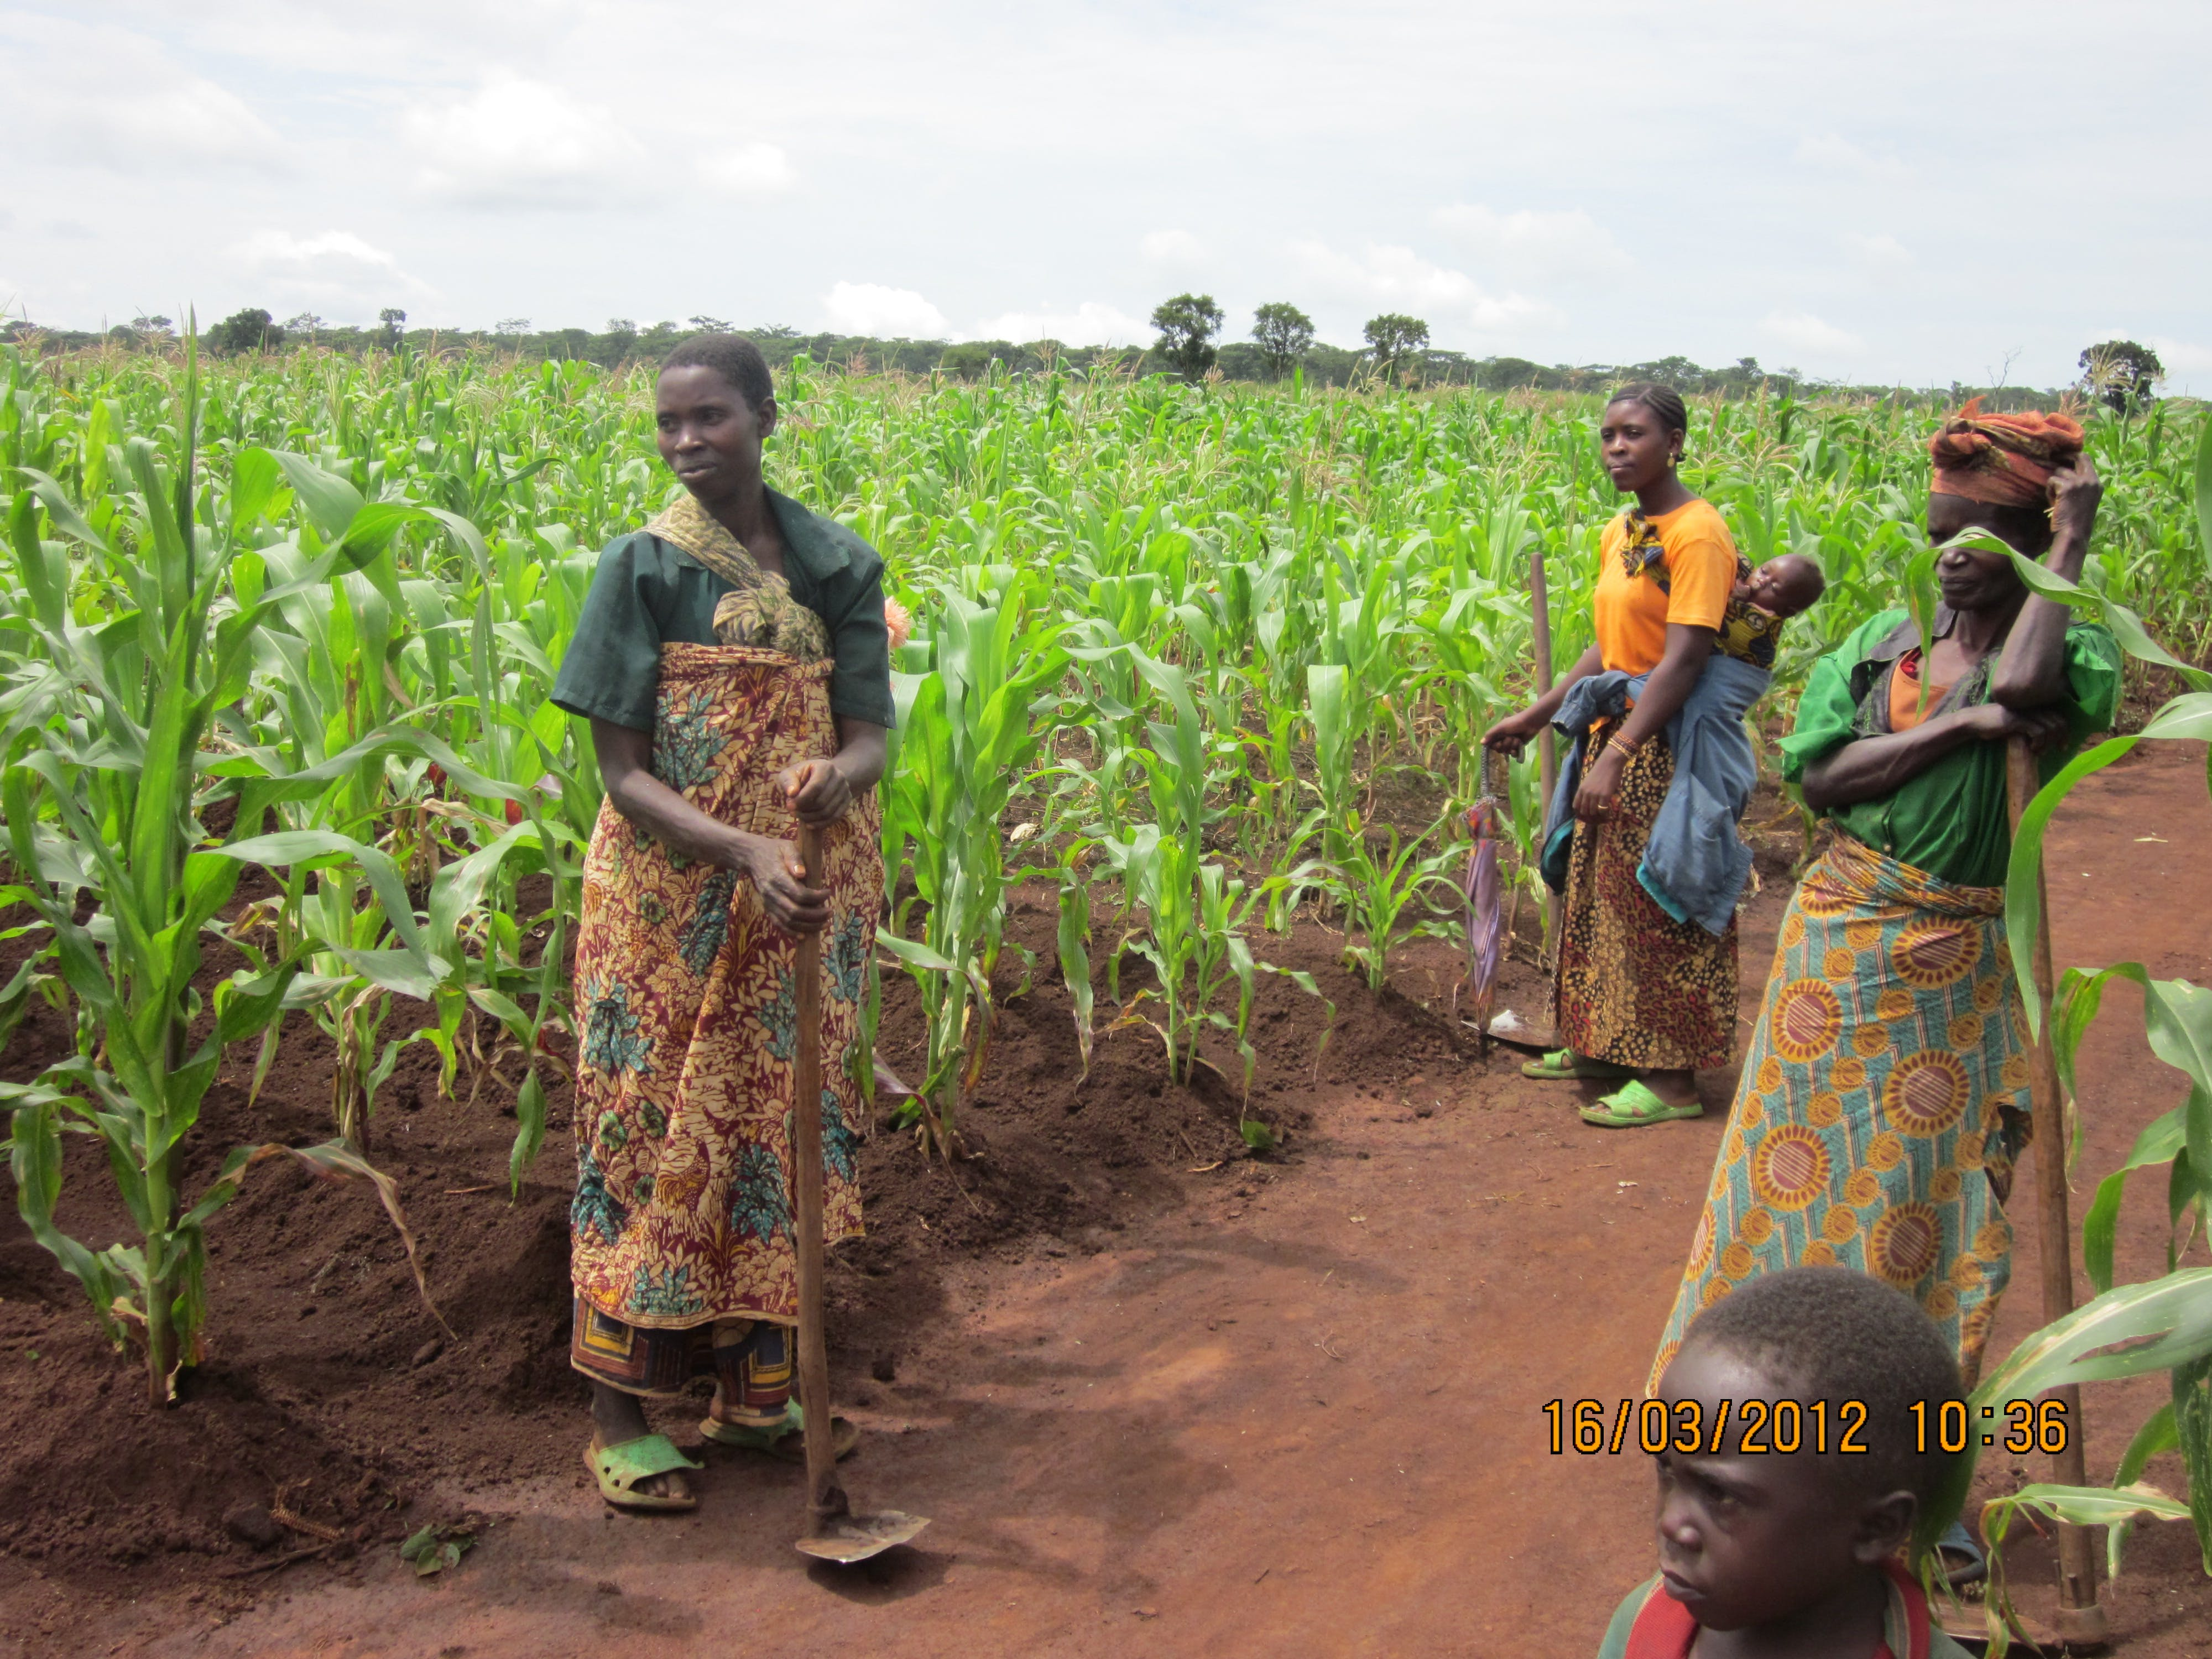 Women farmers in the Congo (DRC) pave the way for healthier families Featured Image